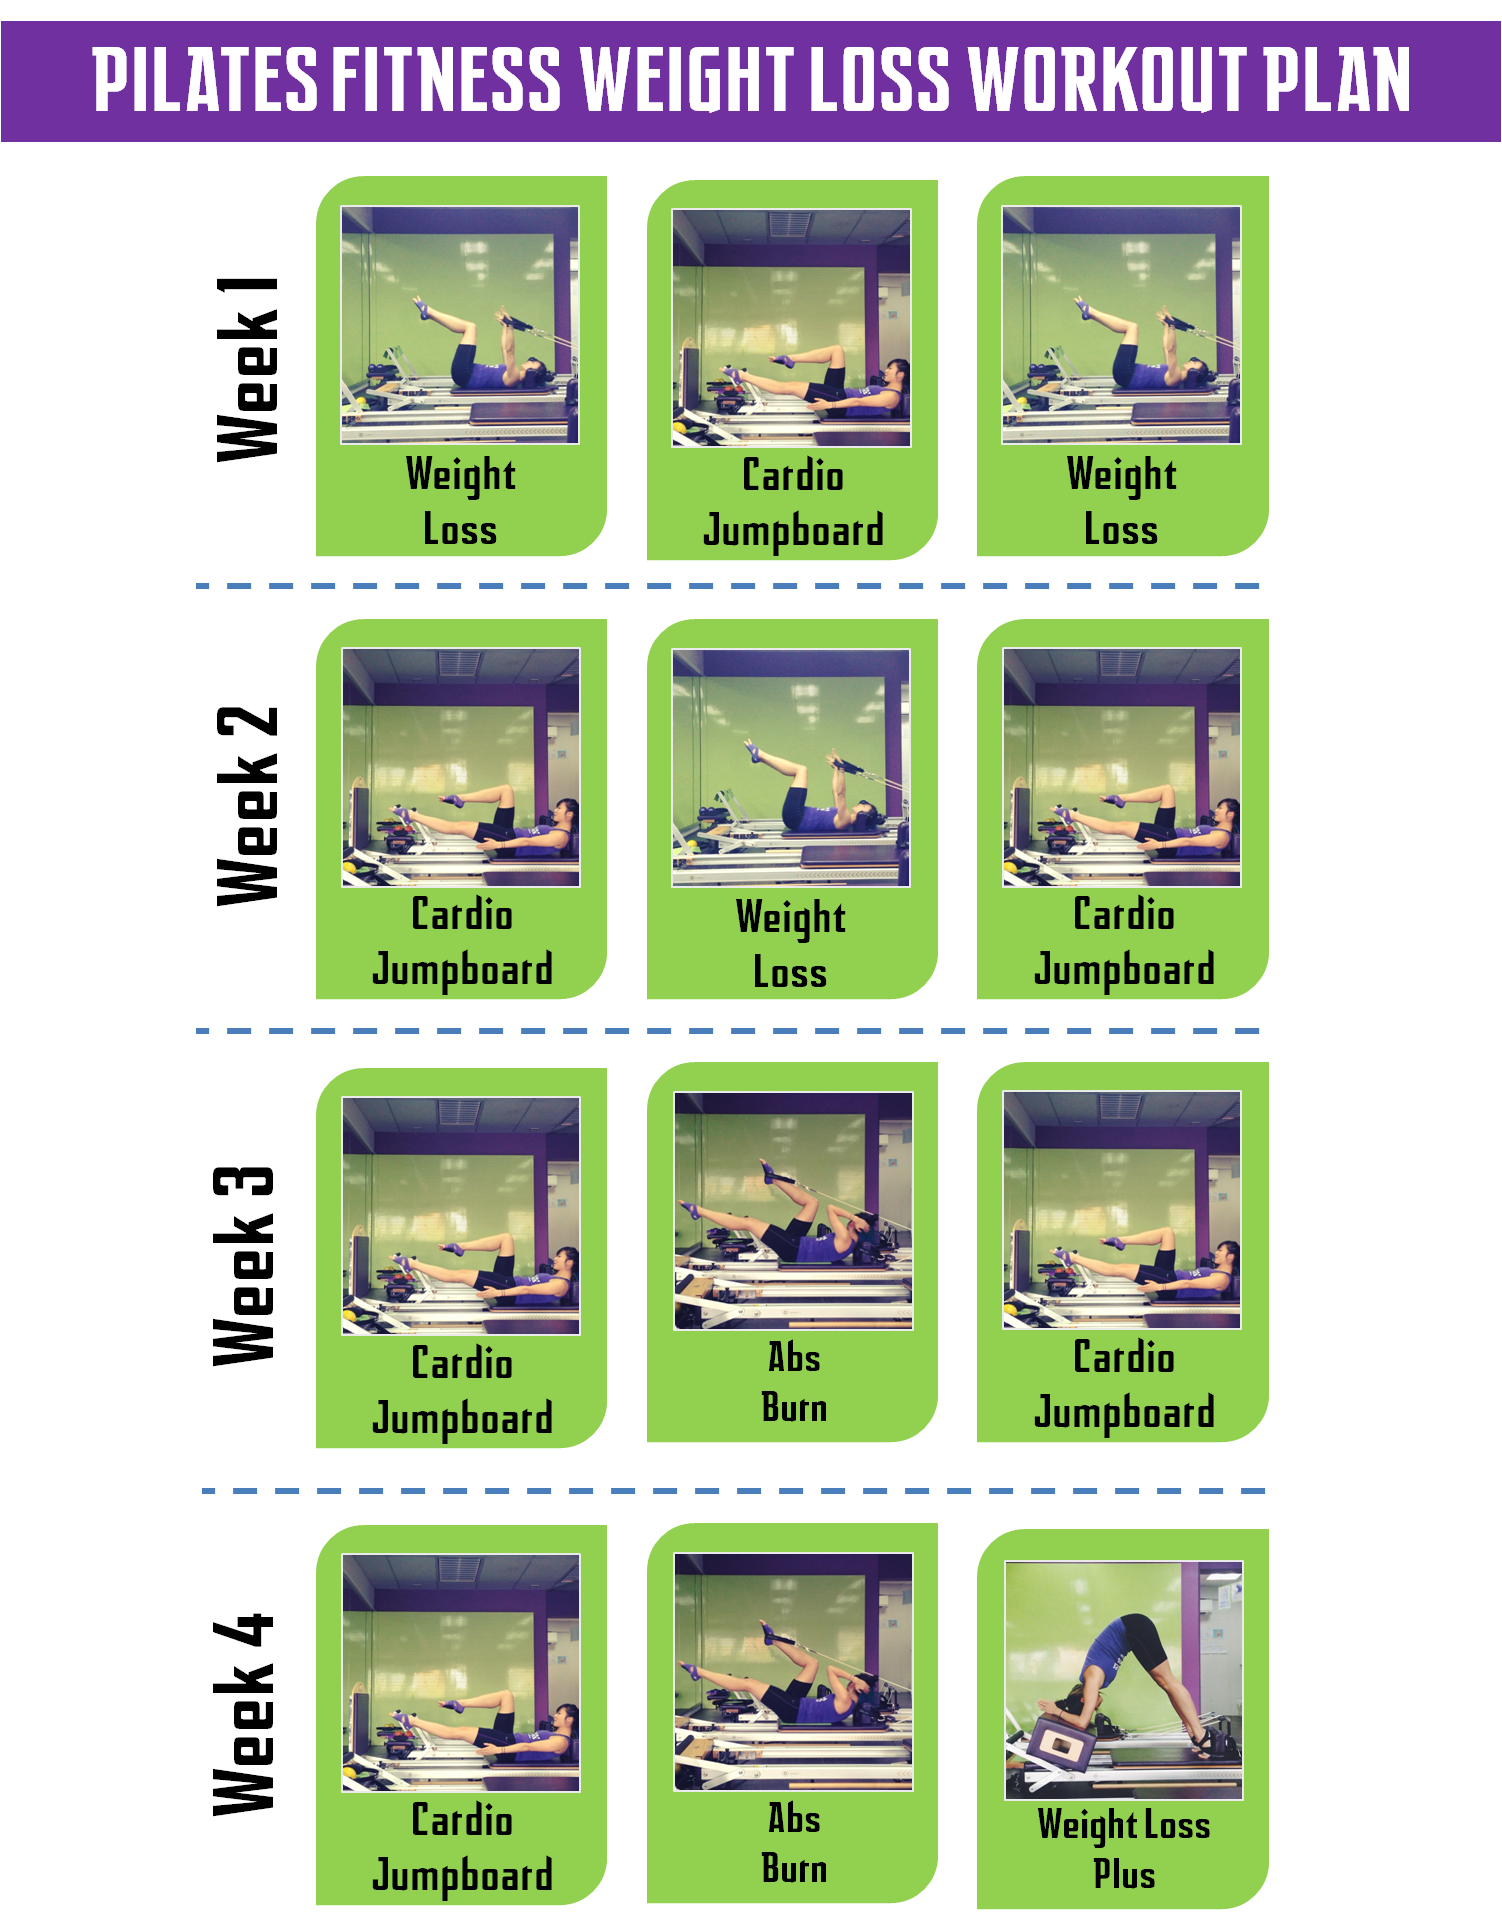 Workout Plans to Win 28 Days Pilates Challenge